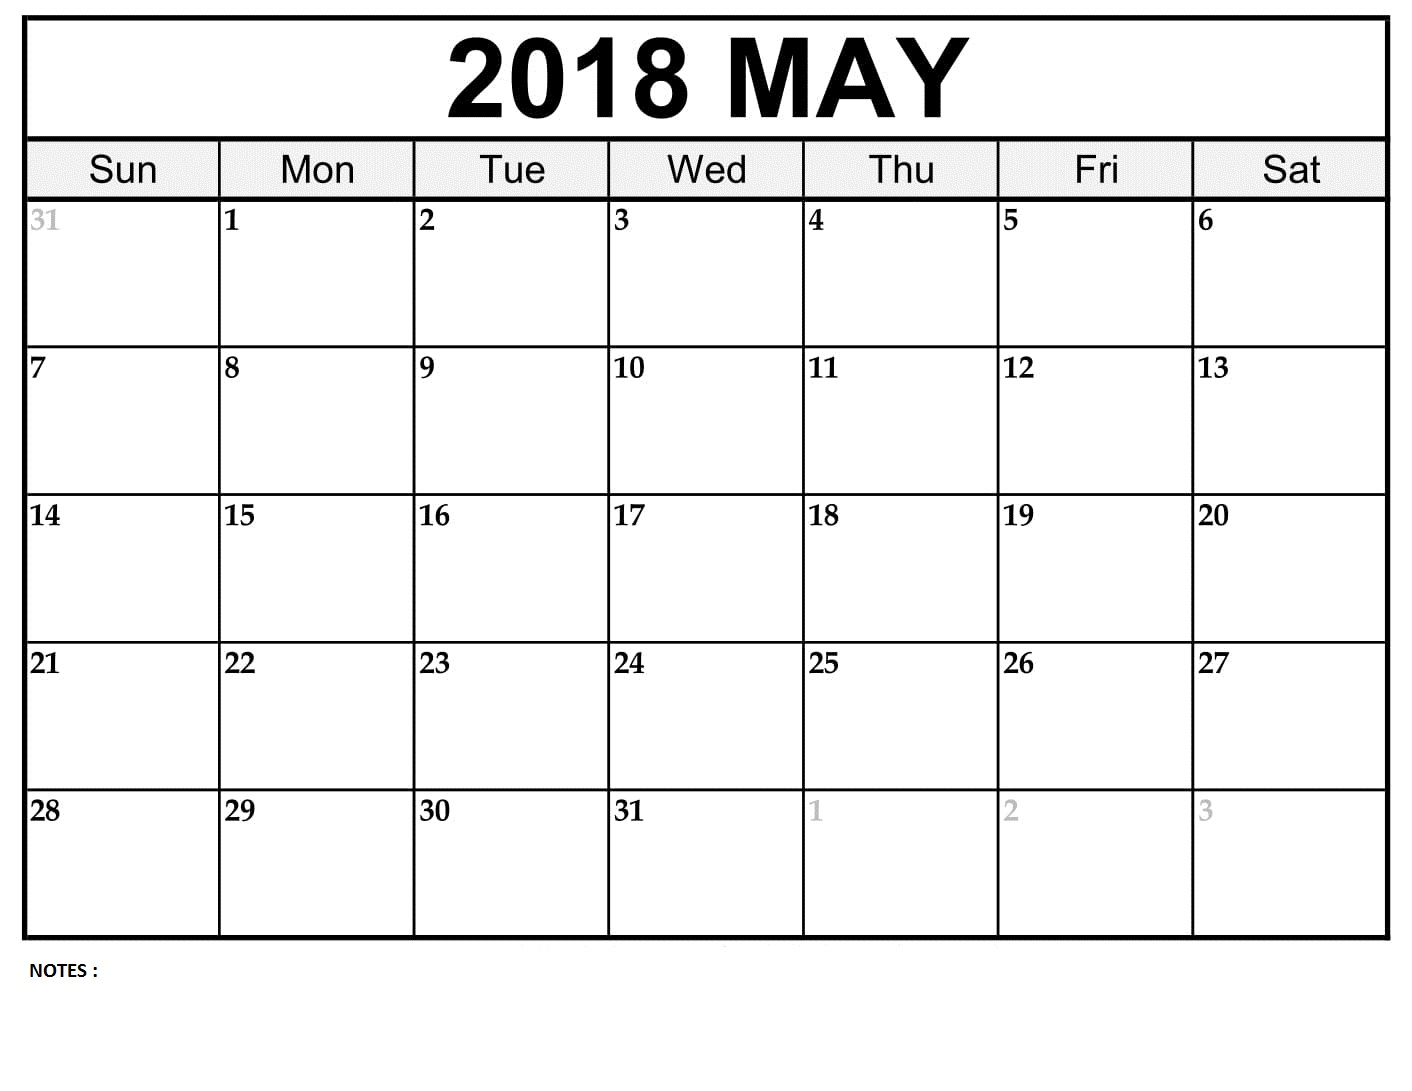 2018 May Calendar With Notes